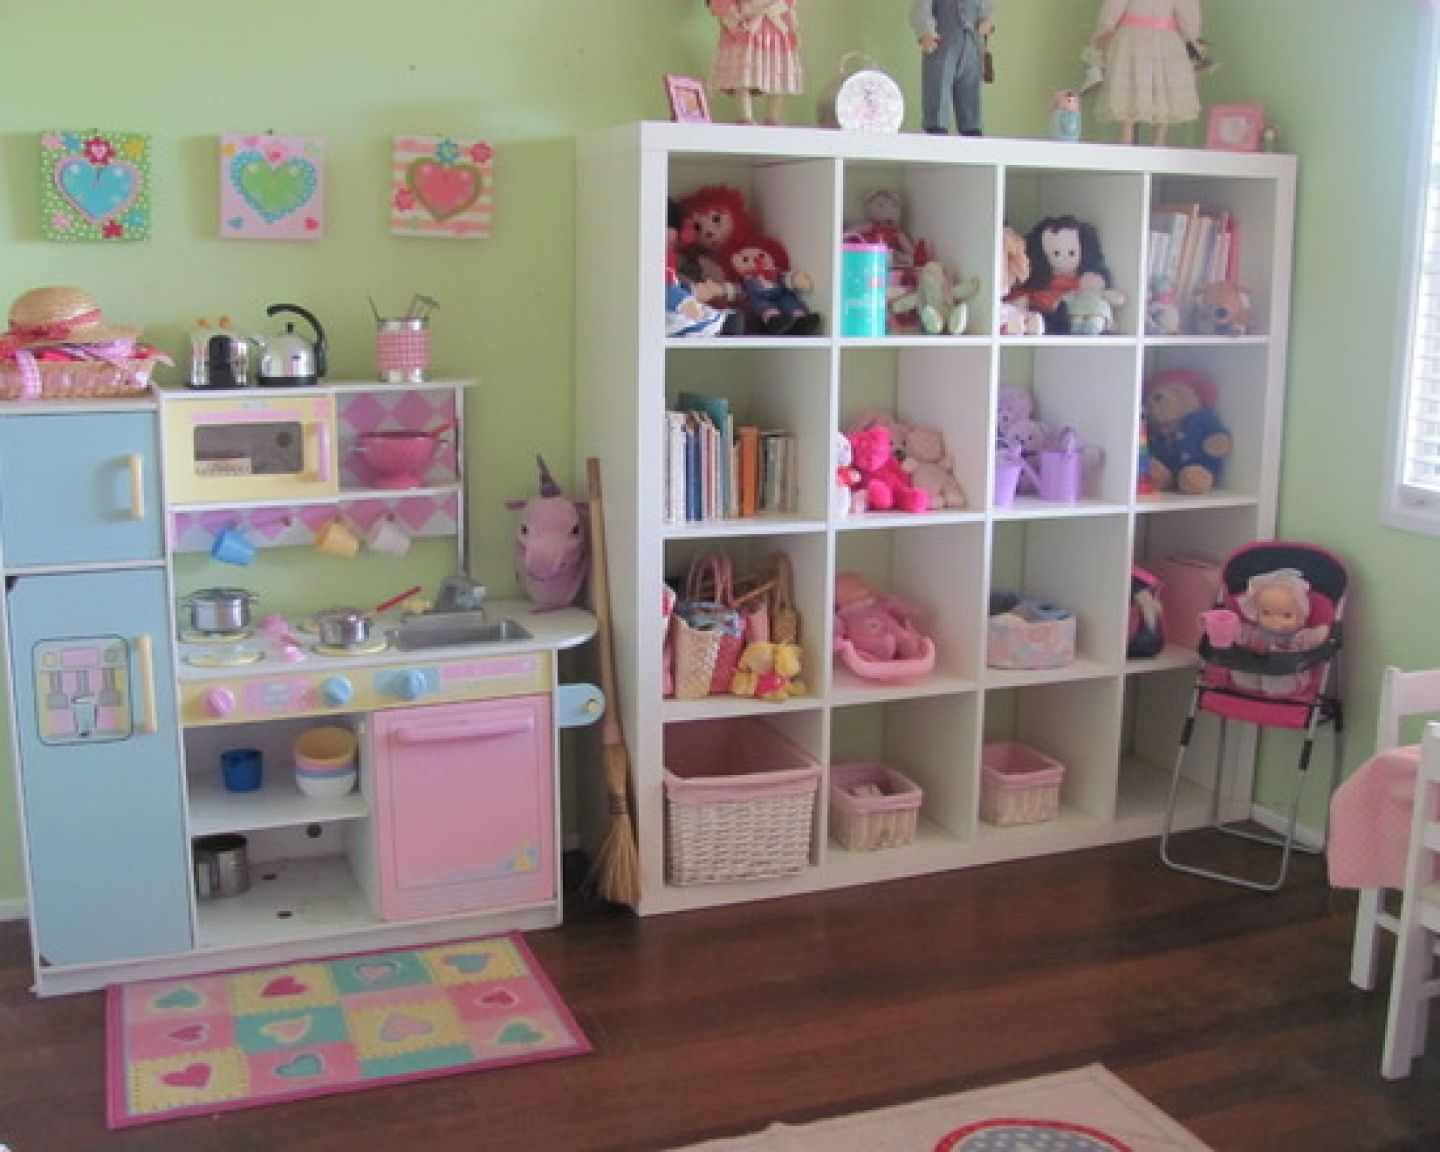 13 Minimalist Playroom Ideas For Girls Stylish On Playroom Decorating Ideas  Design Pictures Remodel Decor And. 13 Minimalist Playroom Ideas For Girls Stylish On Playroom